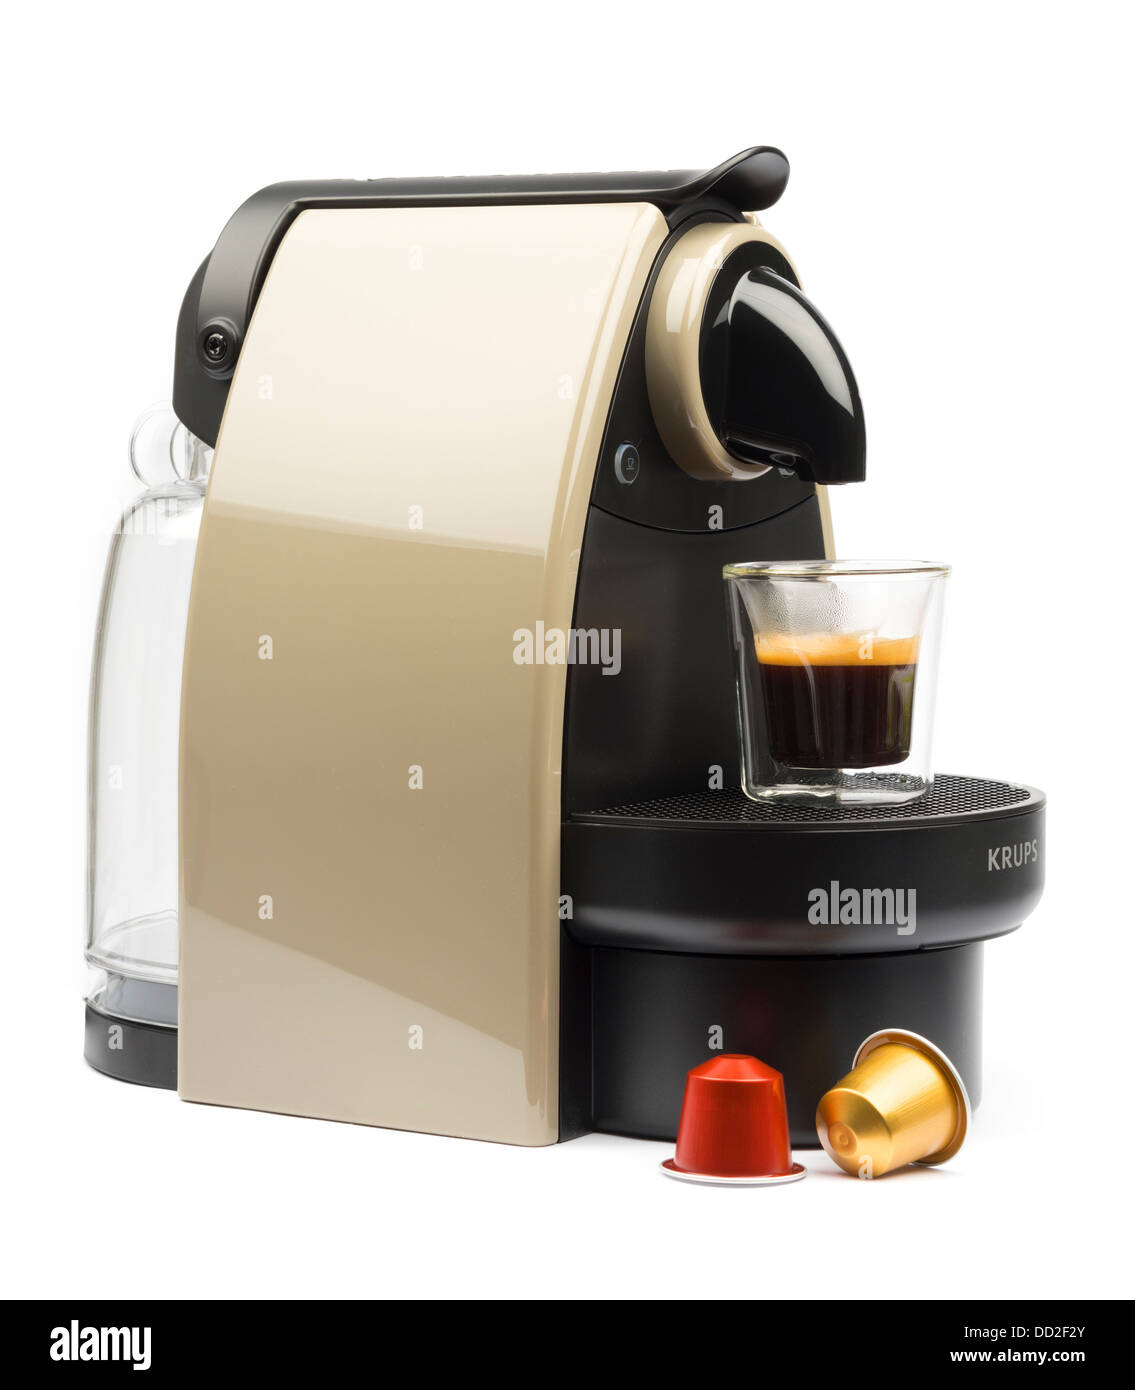 krups essenza auto xn 2140 earth nespresso coffee machine cut out stock photo royalty free. Black Bedroom Furniture Sets. Home Design Ideas